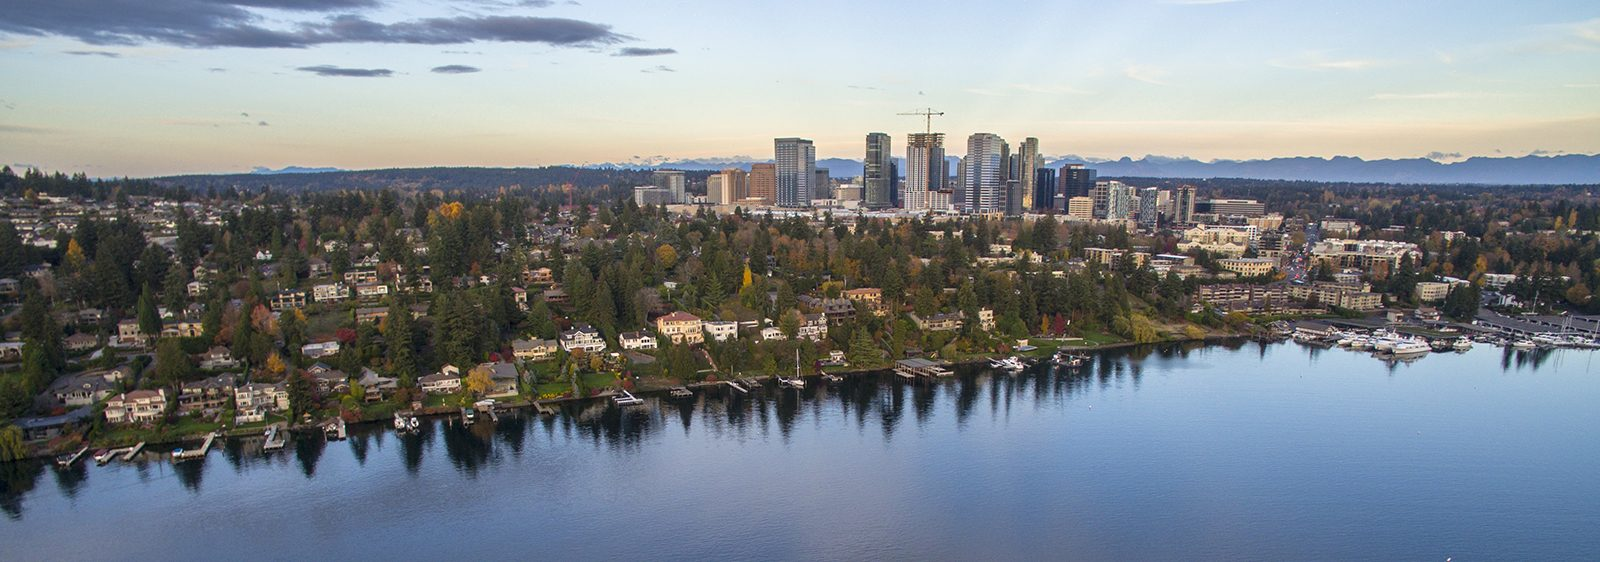 Bellevue, Washington skyline from Lake Washington